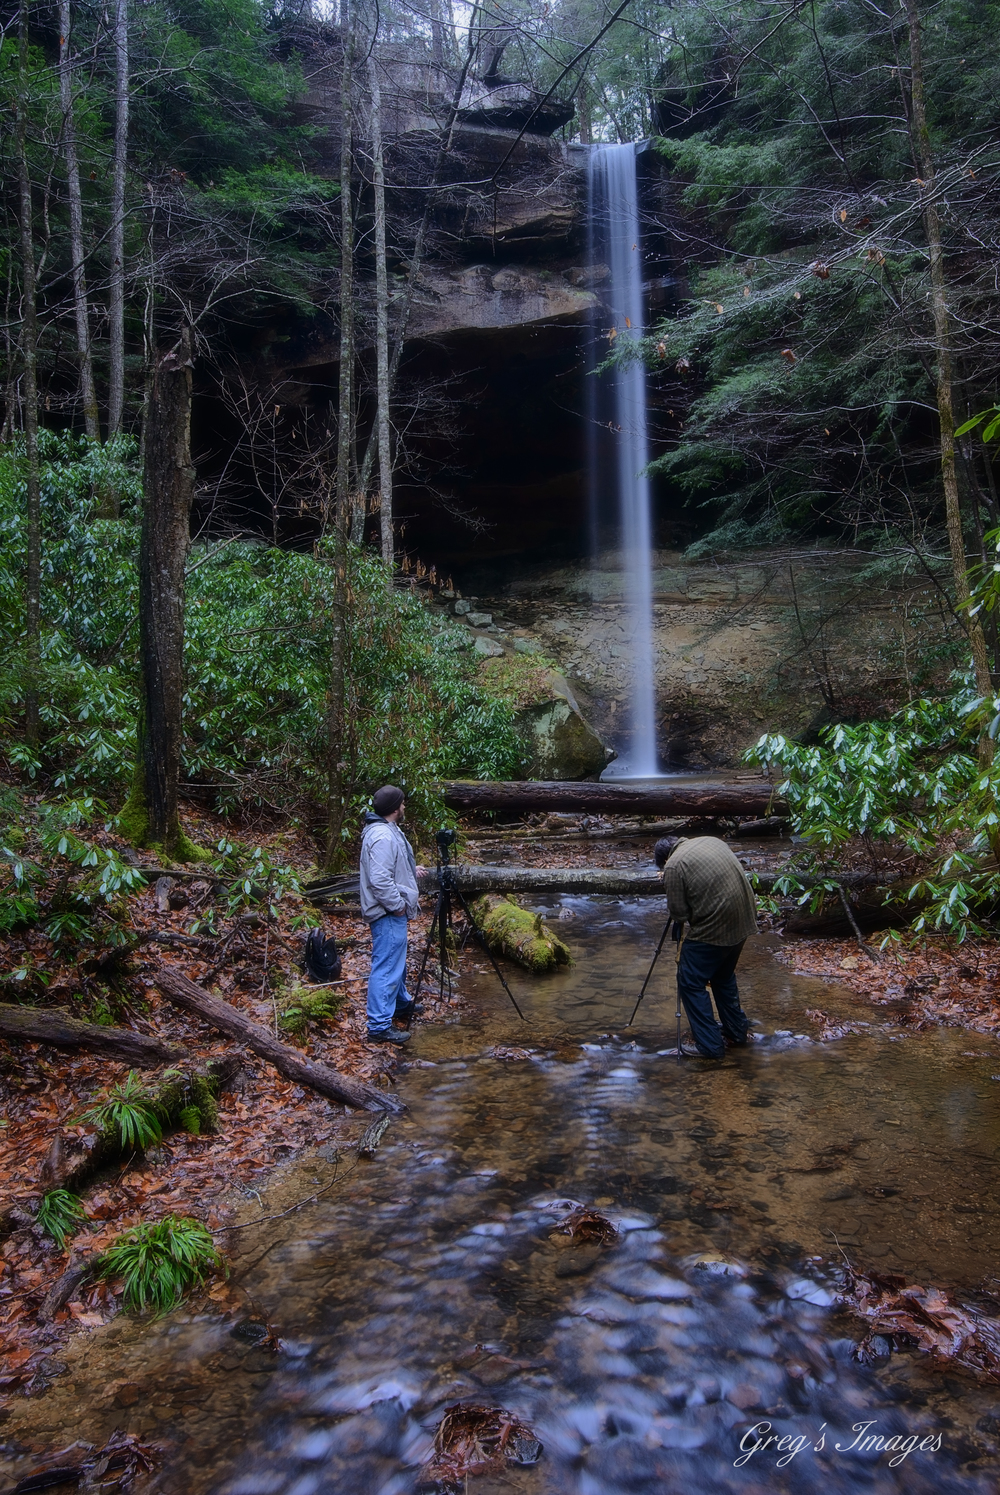 Fellow photogs Bill Fultz and Christopher Morris photographing Yahoo Falls from downstream.